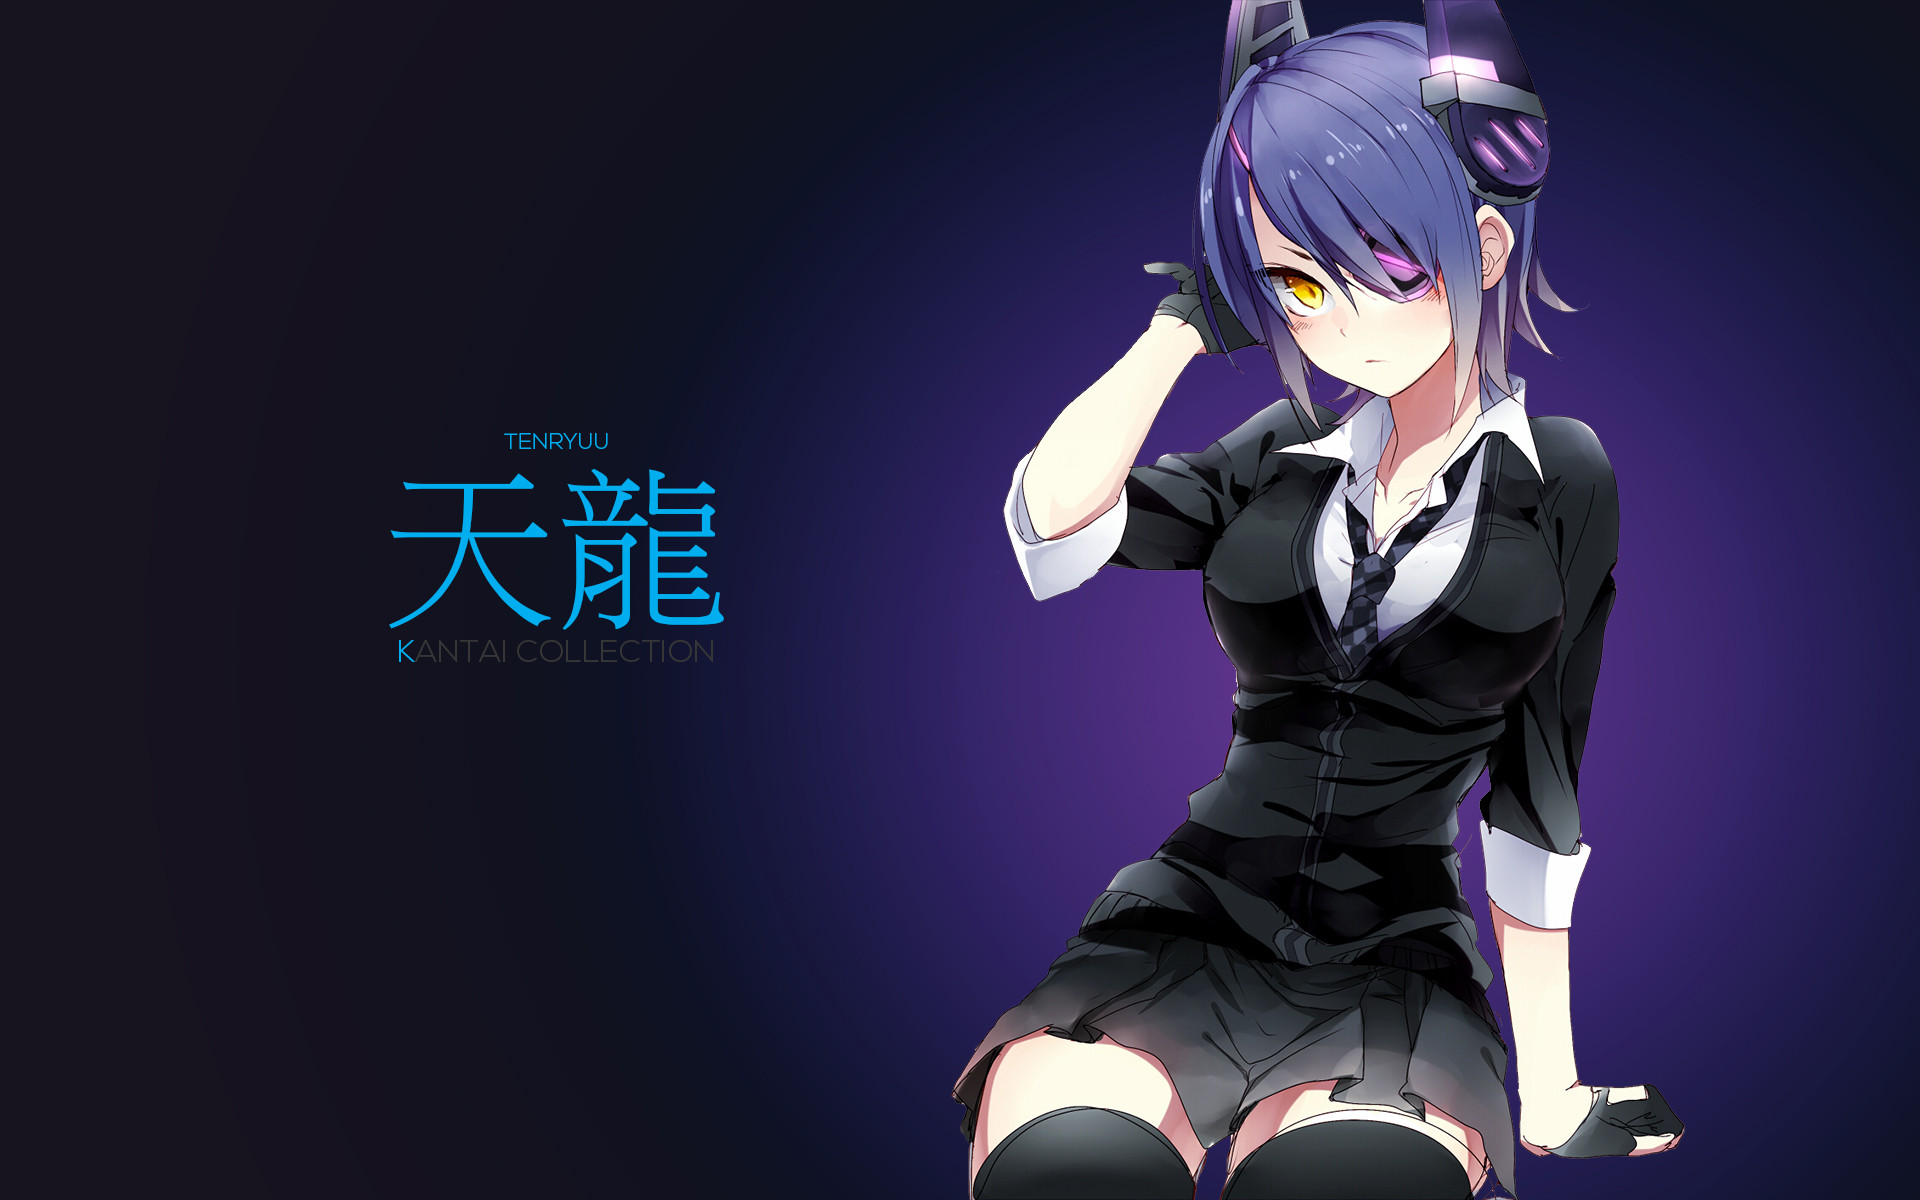 anime_wallpaper_Kantai_Collection_tenryuu-099023.jpg